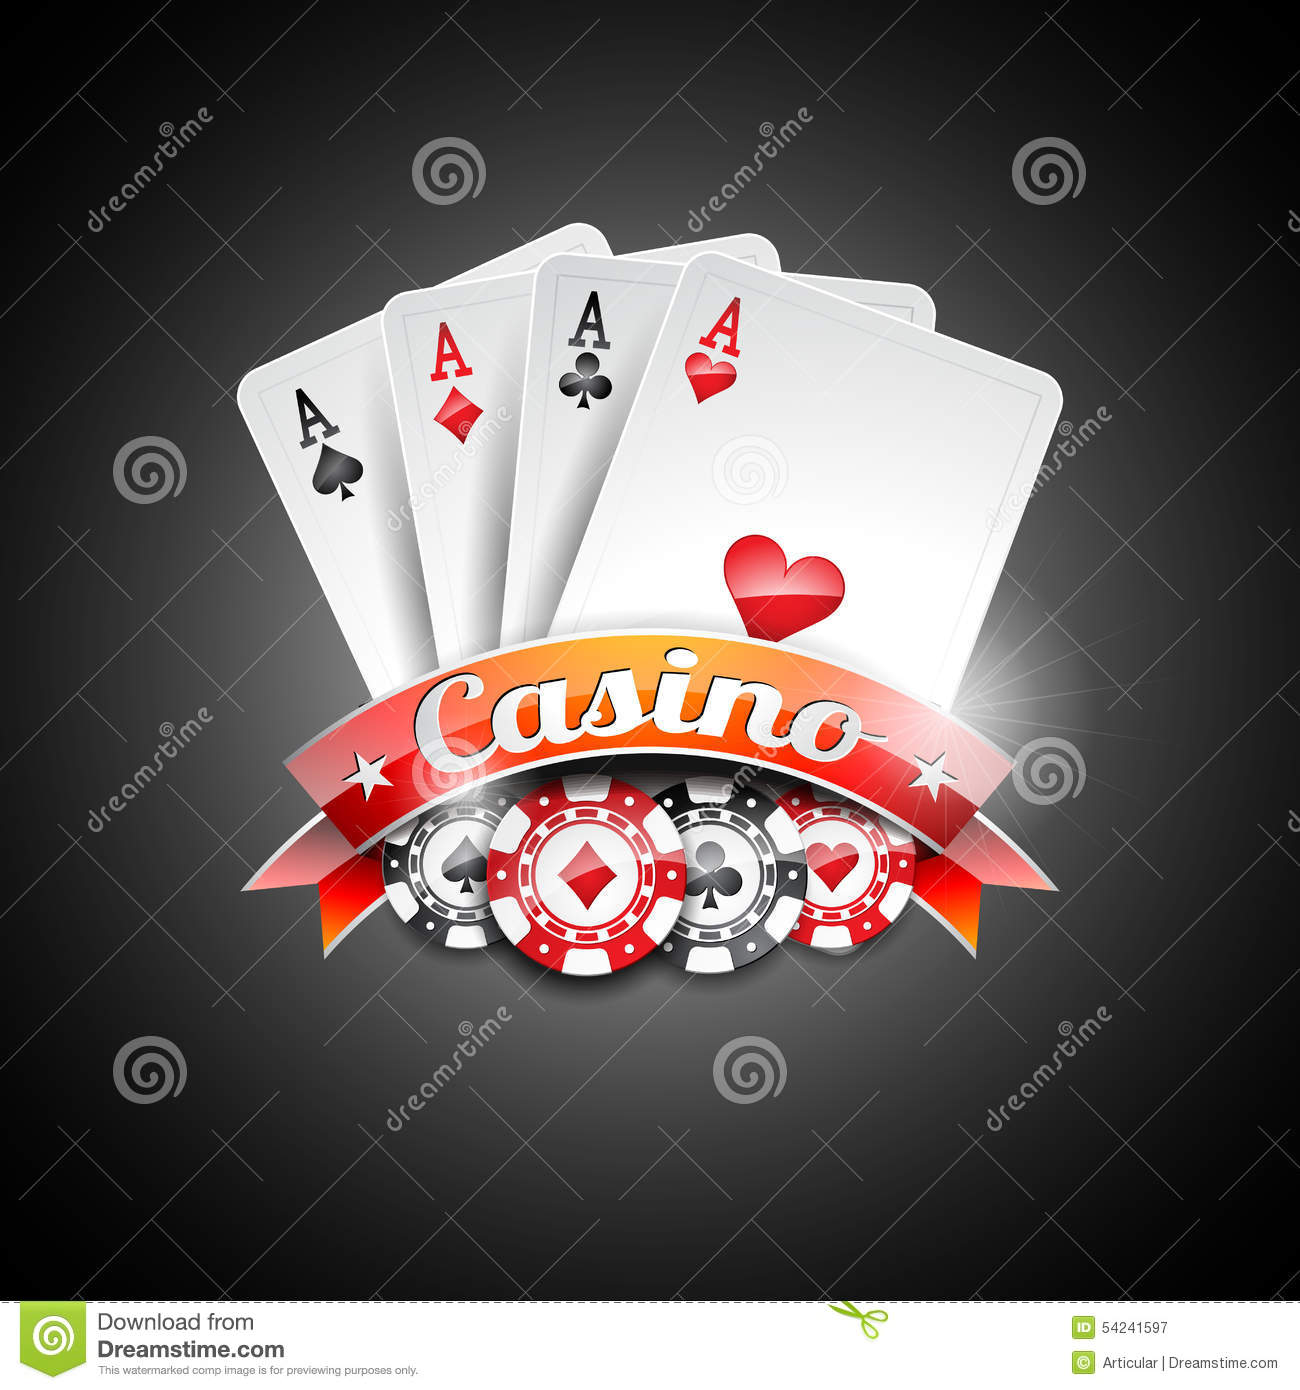 casino club download free